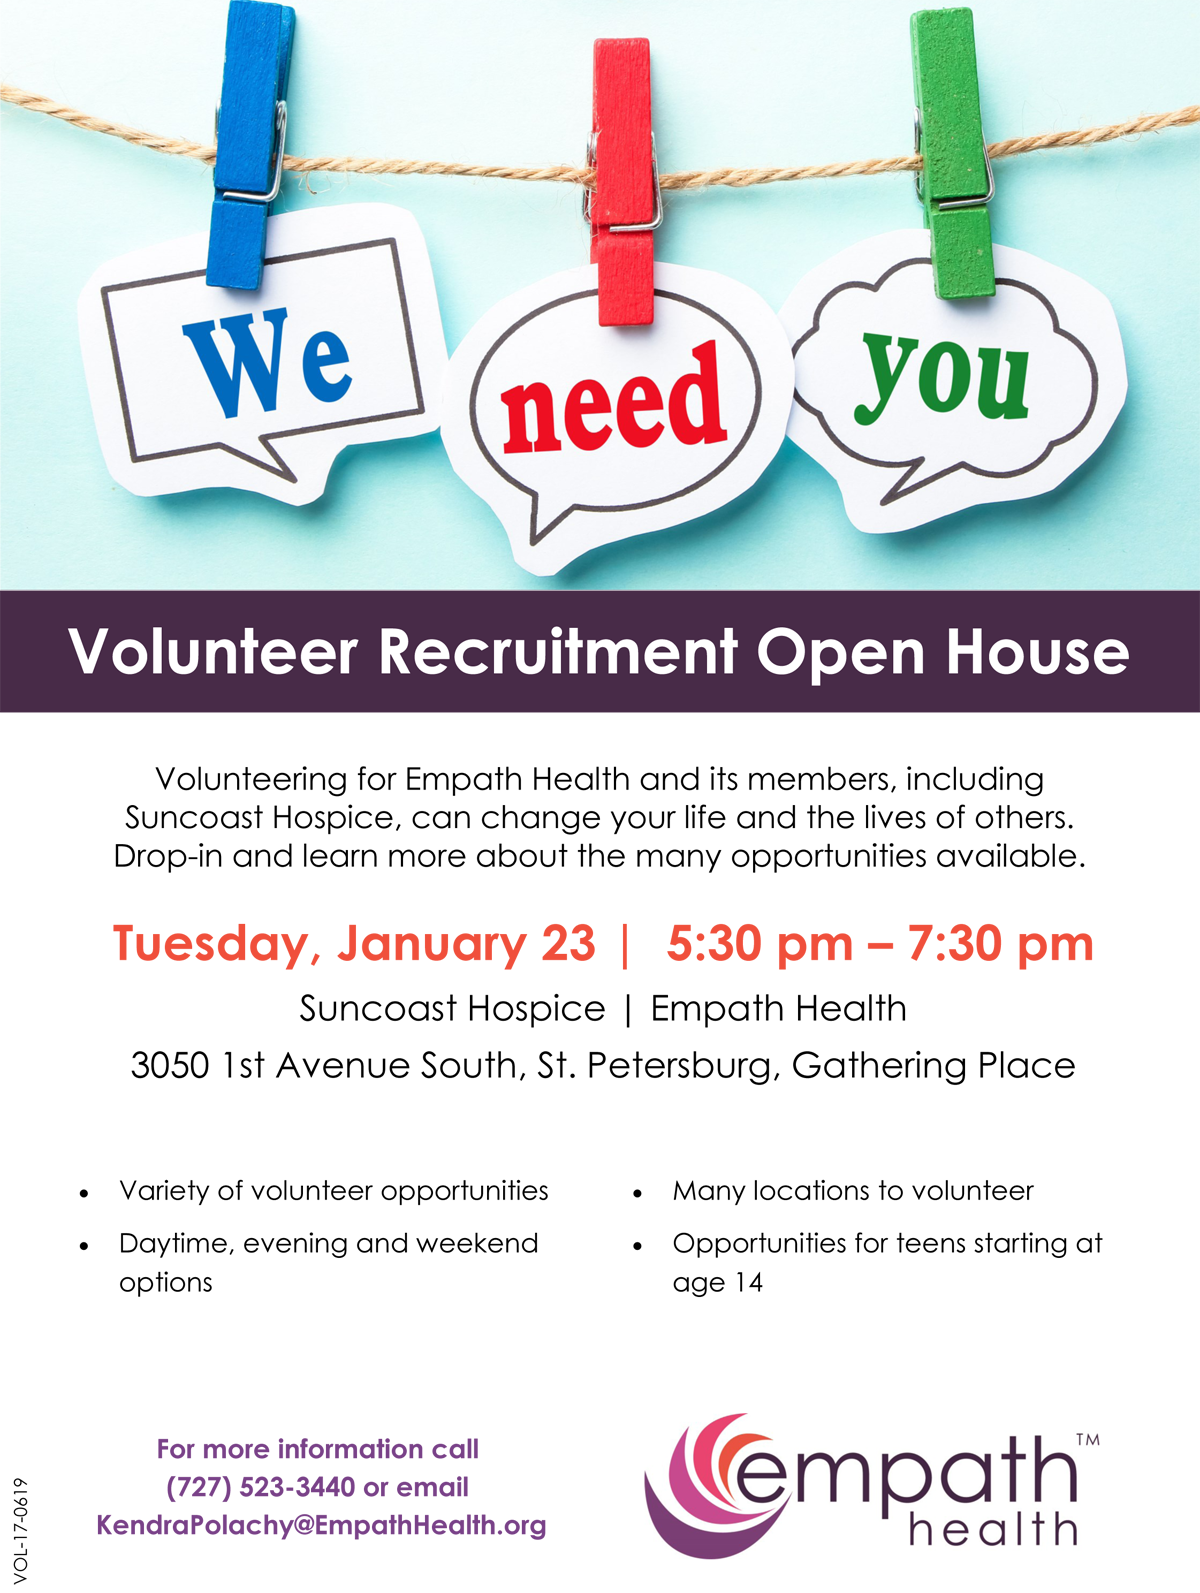 Volunteer Recruitment Open House @ Suncoast Hospice | Empath Health Service Center, Gathering Place  | Saint Petersburg | Florida | United States